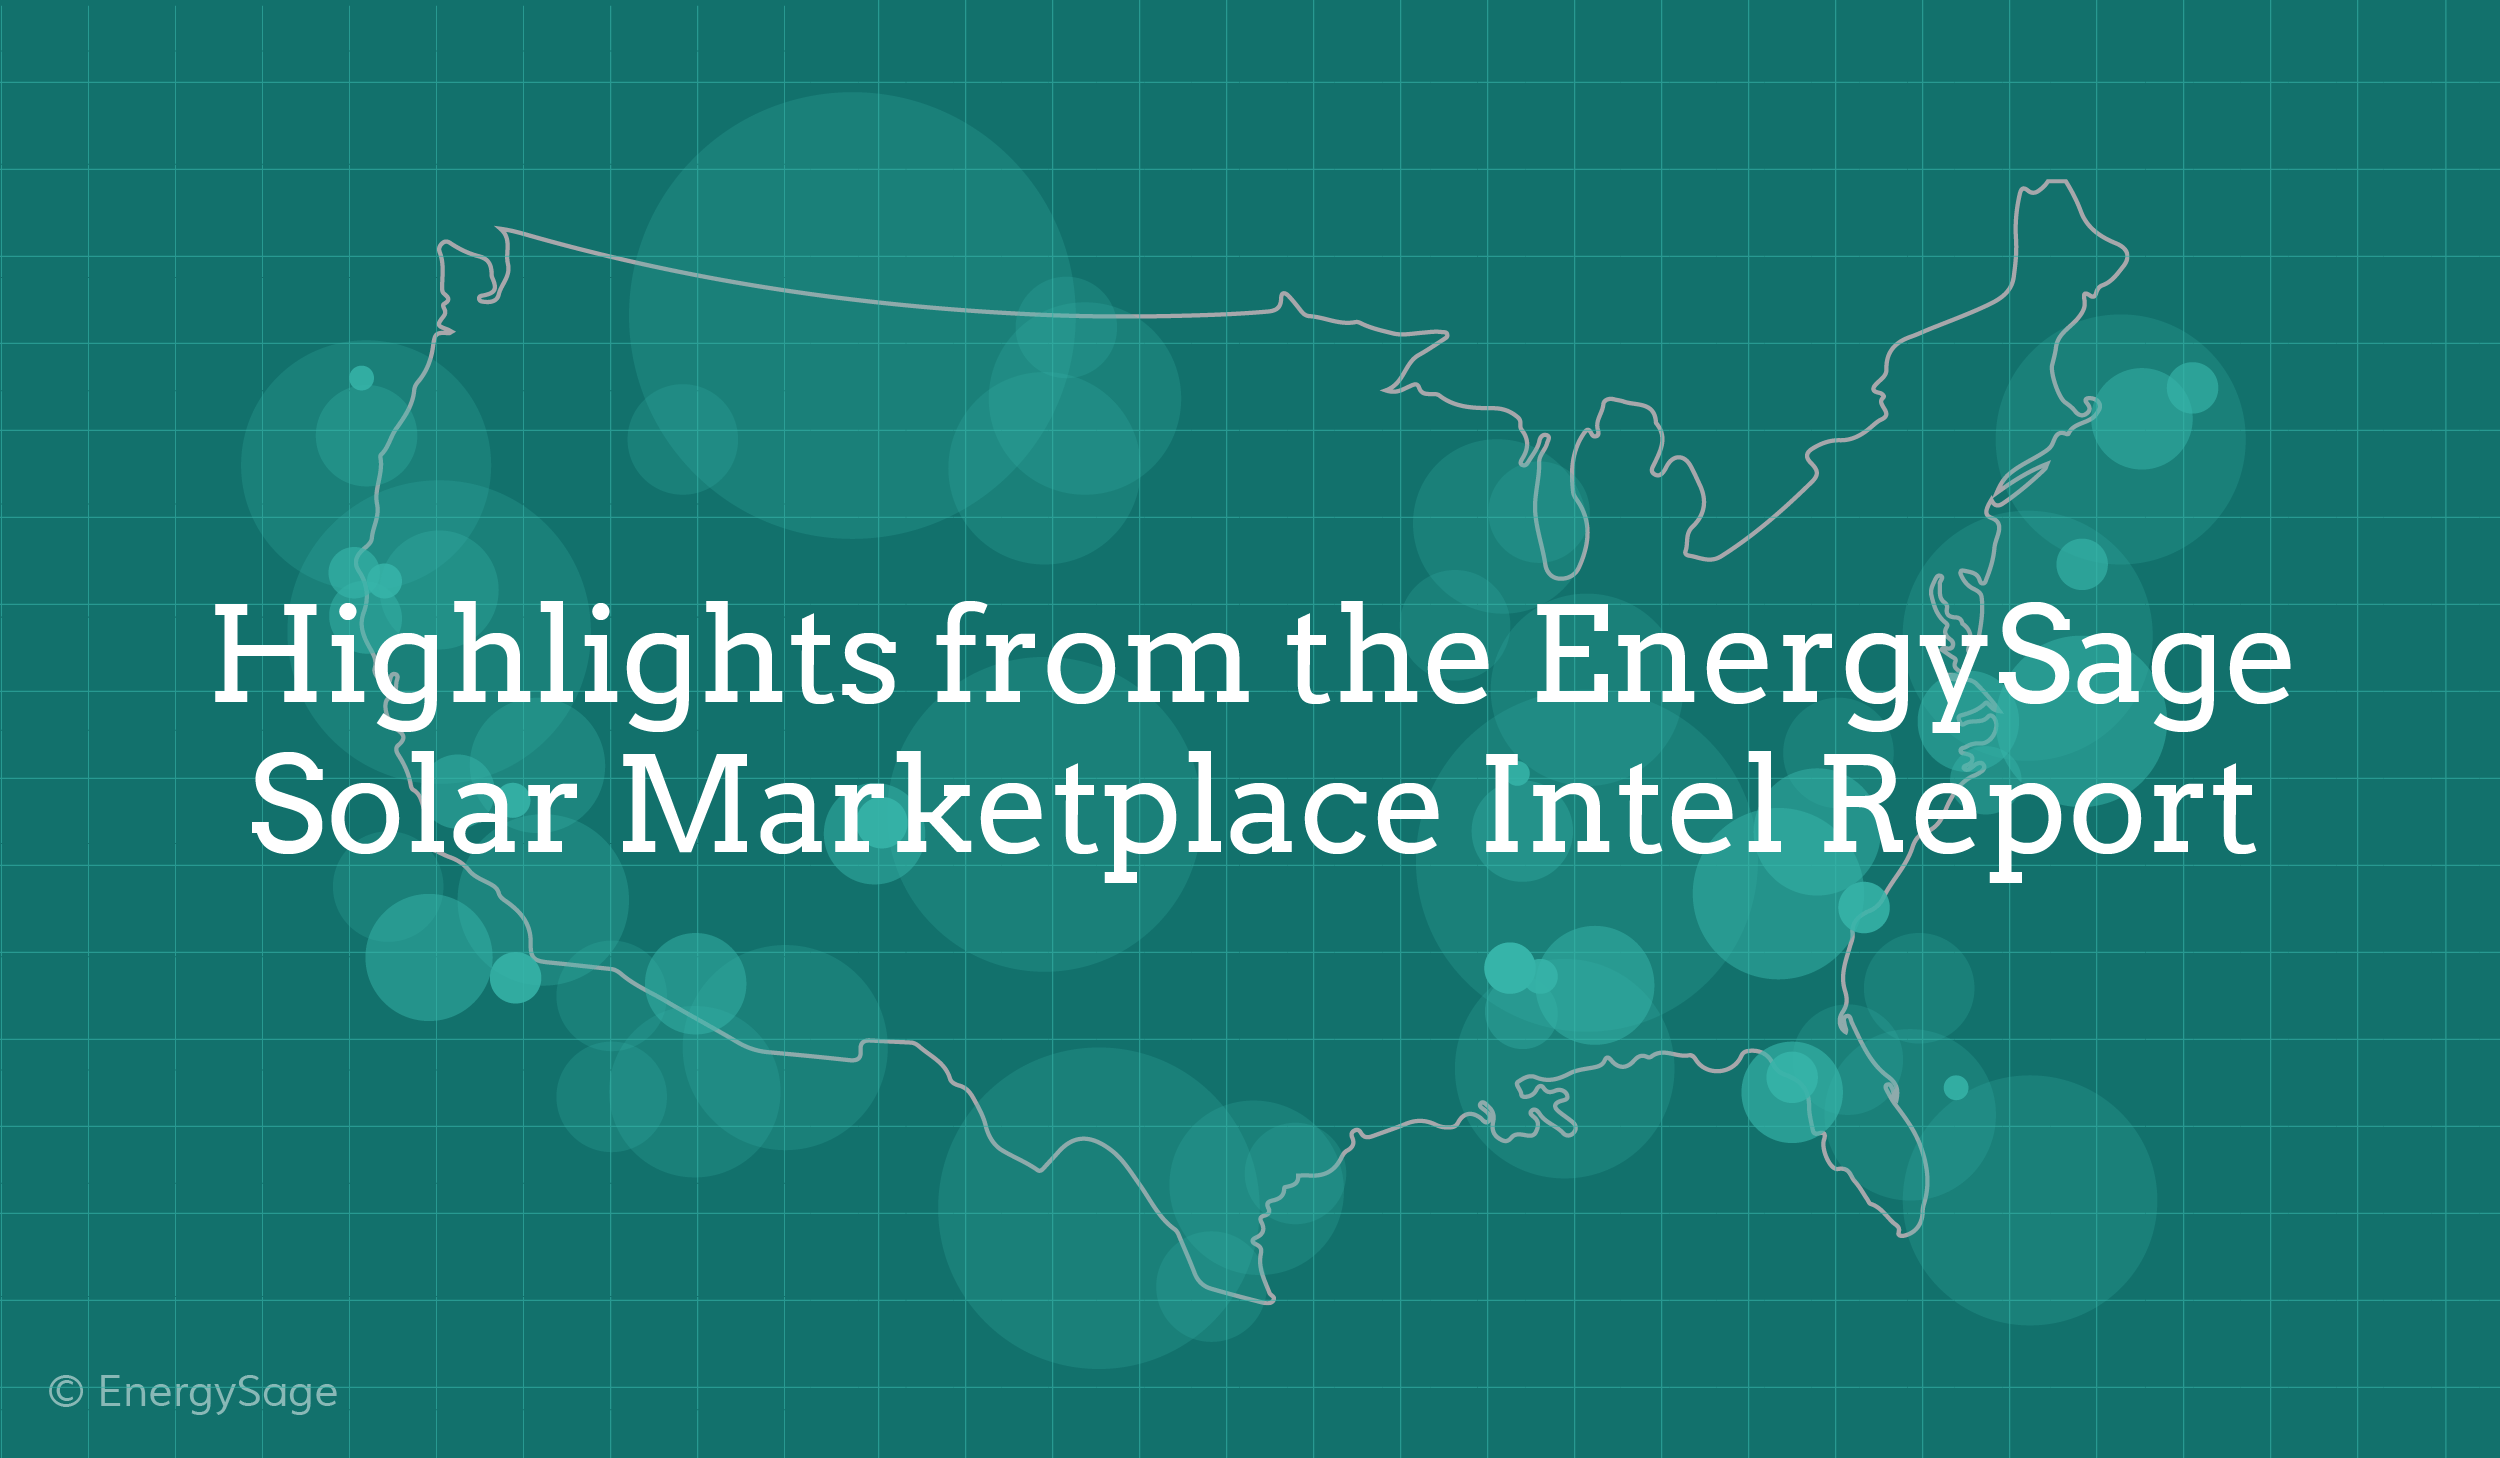 Solar Marketplace Intel Report EnergySage